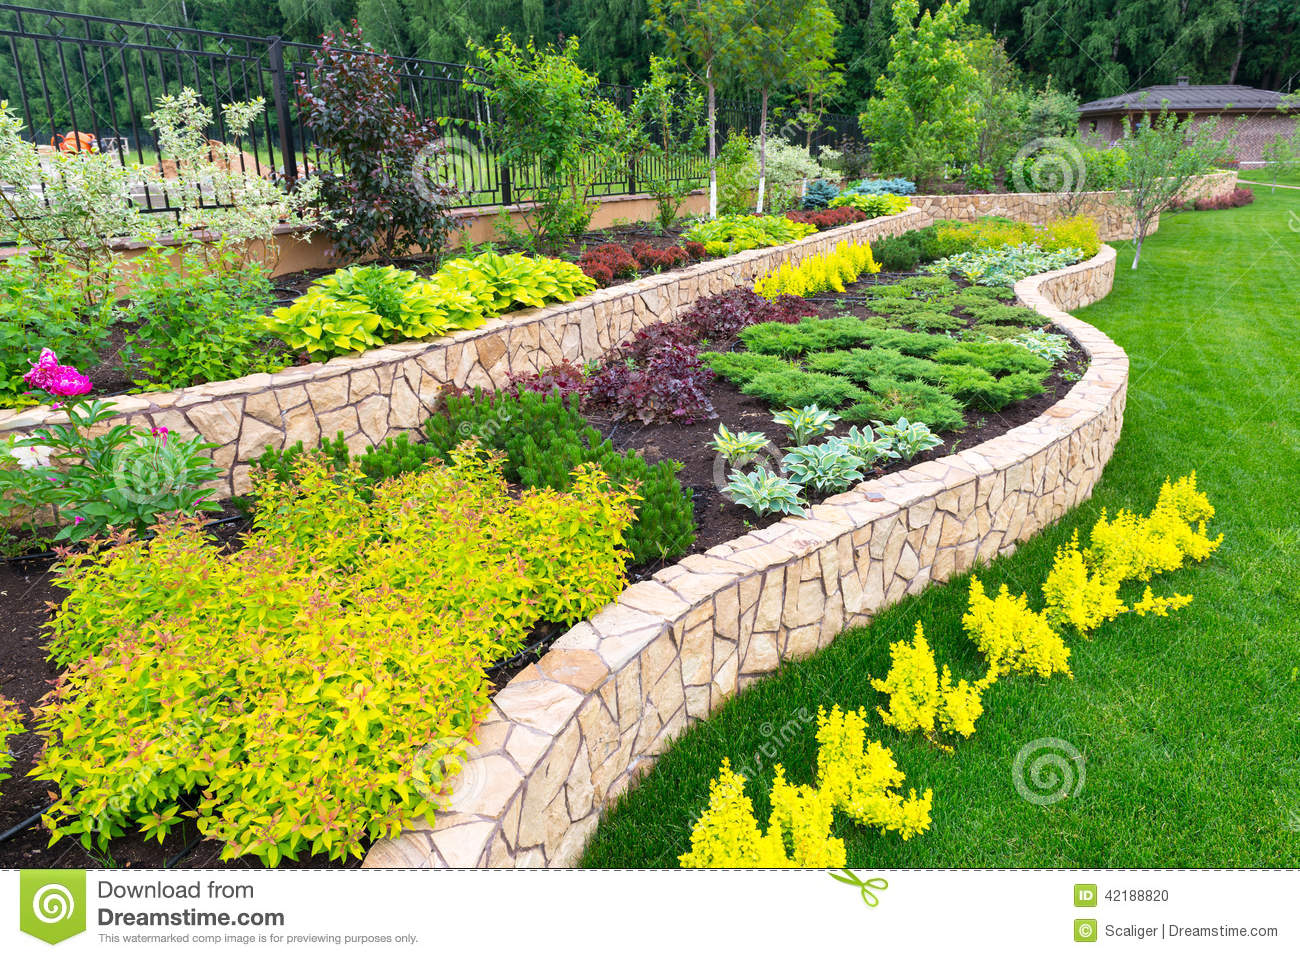 Home Garden Pictures natural landscaping in home garden stock photo - image: 42188820